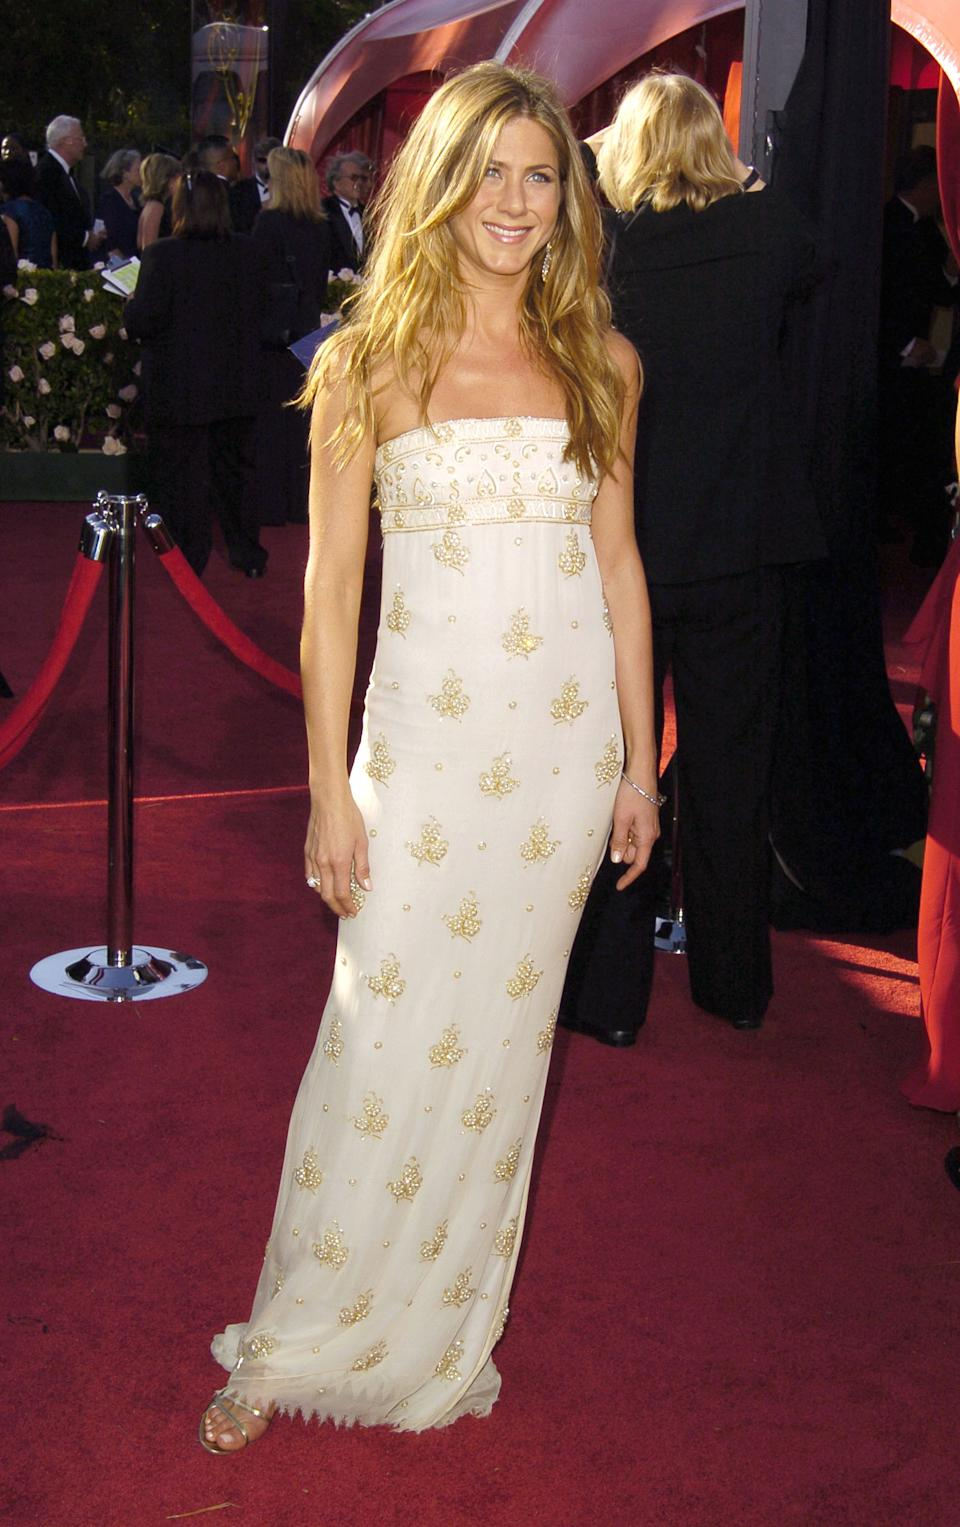 Aniston was the epitome of sun-kissed glamour in this grecian-inspired Chanel gown at the 2004 Emmy Awards. (Photo by SGranitz/WireImage)